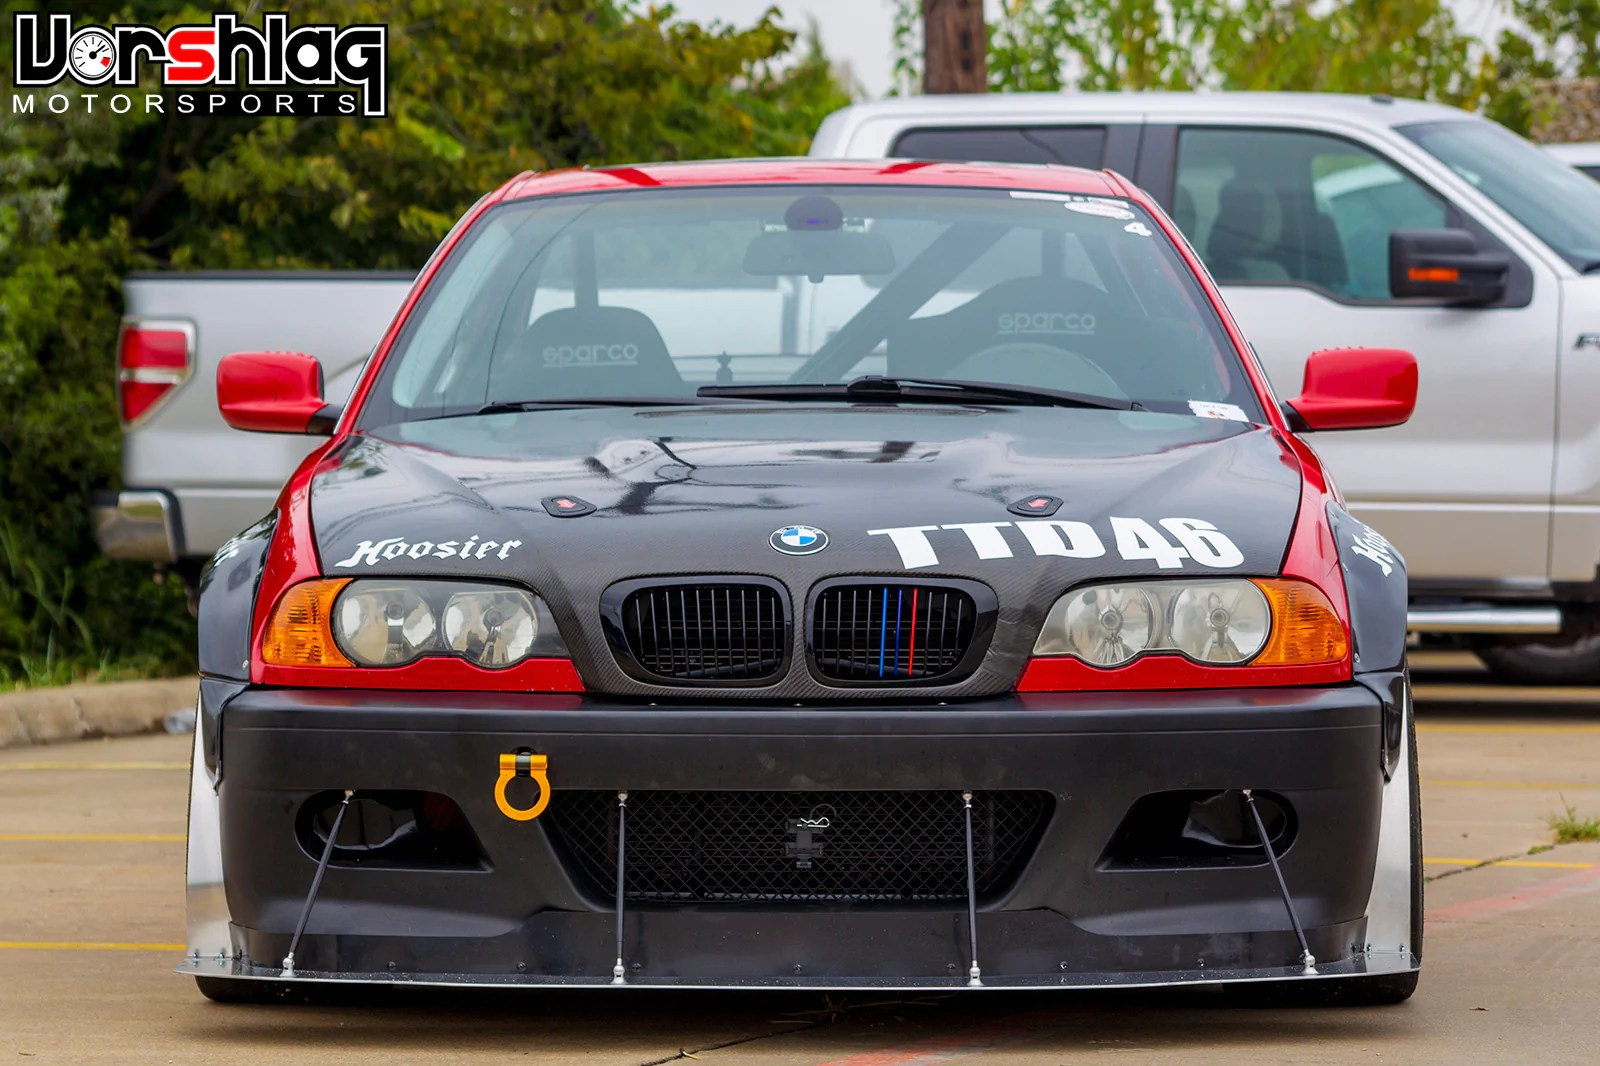 medium resolution of  hard motorsport brake duct inlets and fog light delete bmw e46 m3 zhp